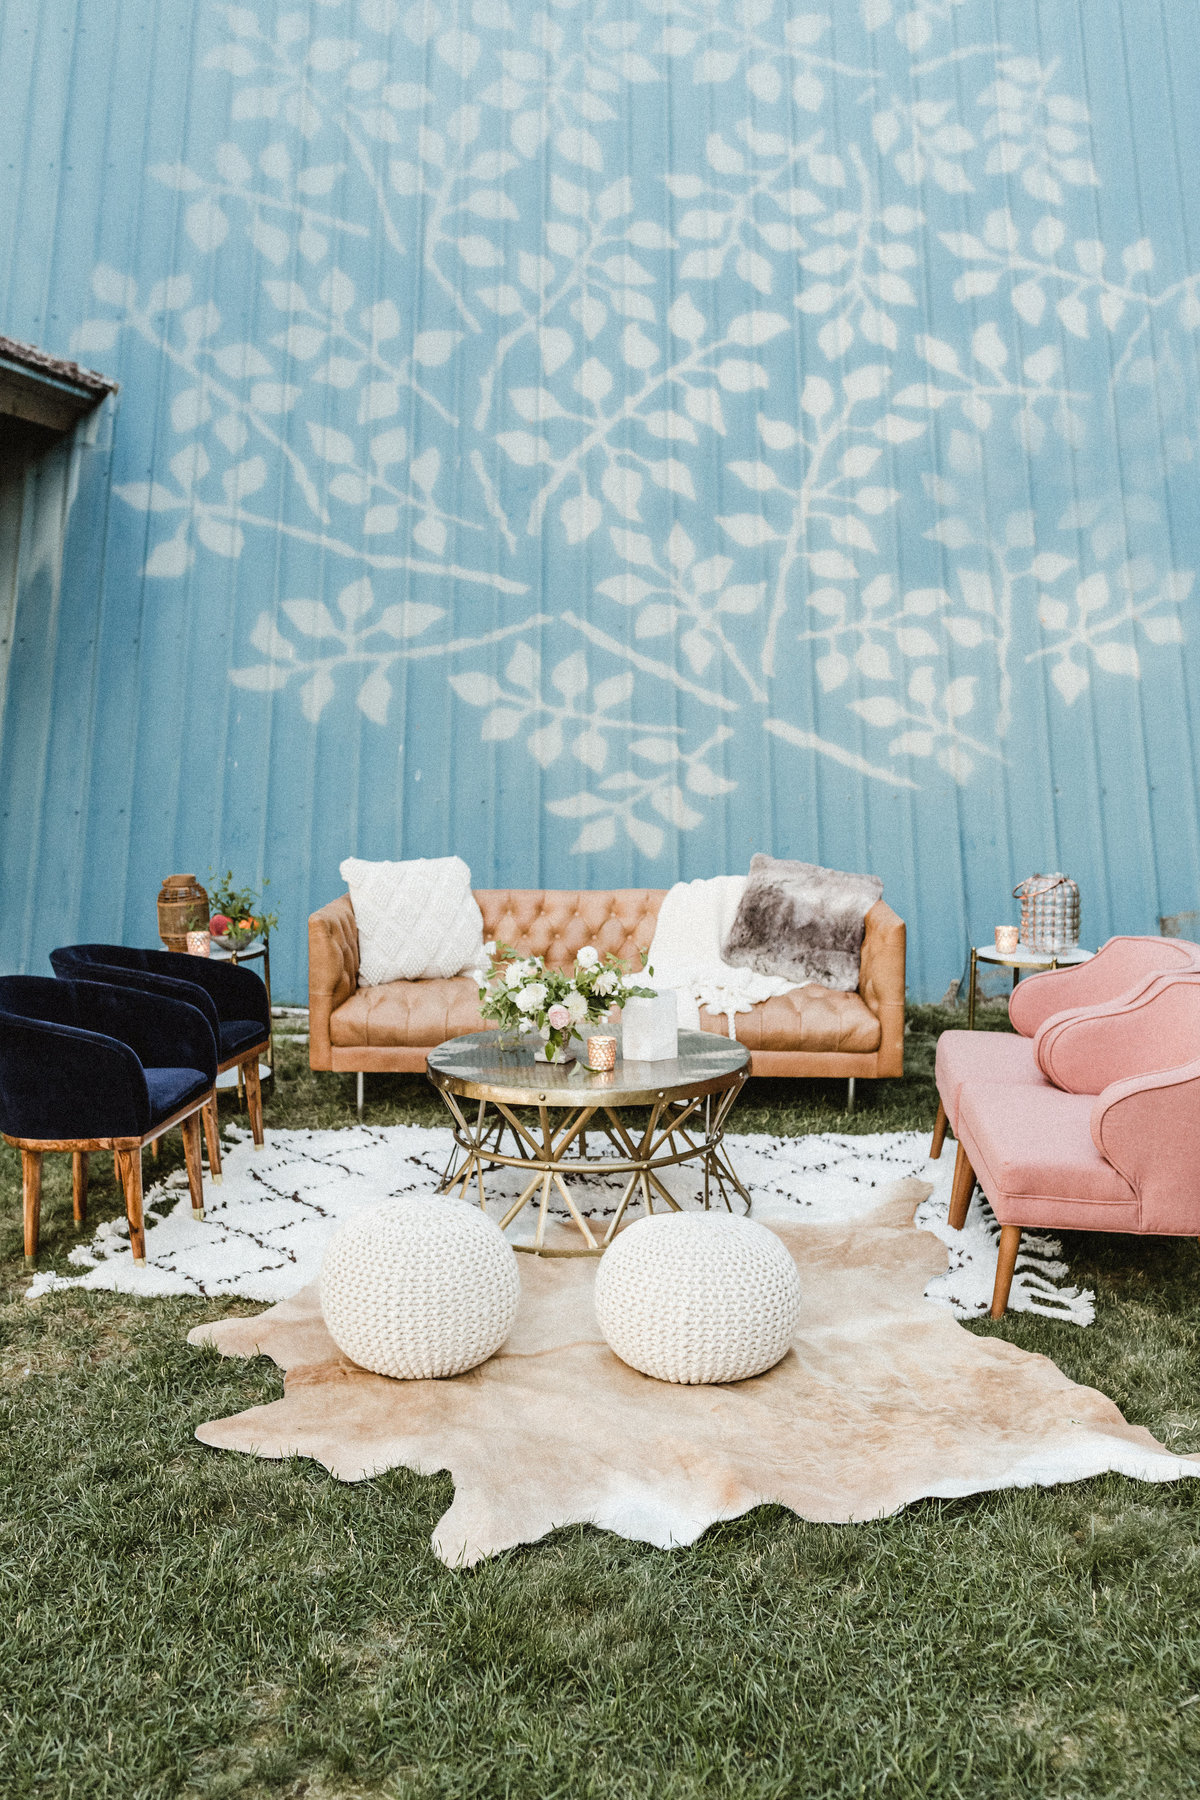 JB Wedding - Theirs Lounge - Our Vignette - sarah-falugo-wedding-photographer-julianne-hough-brooks-laich-1837